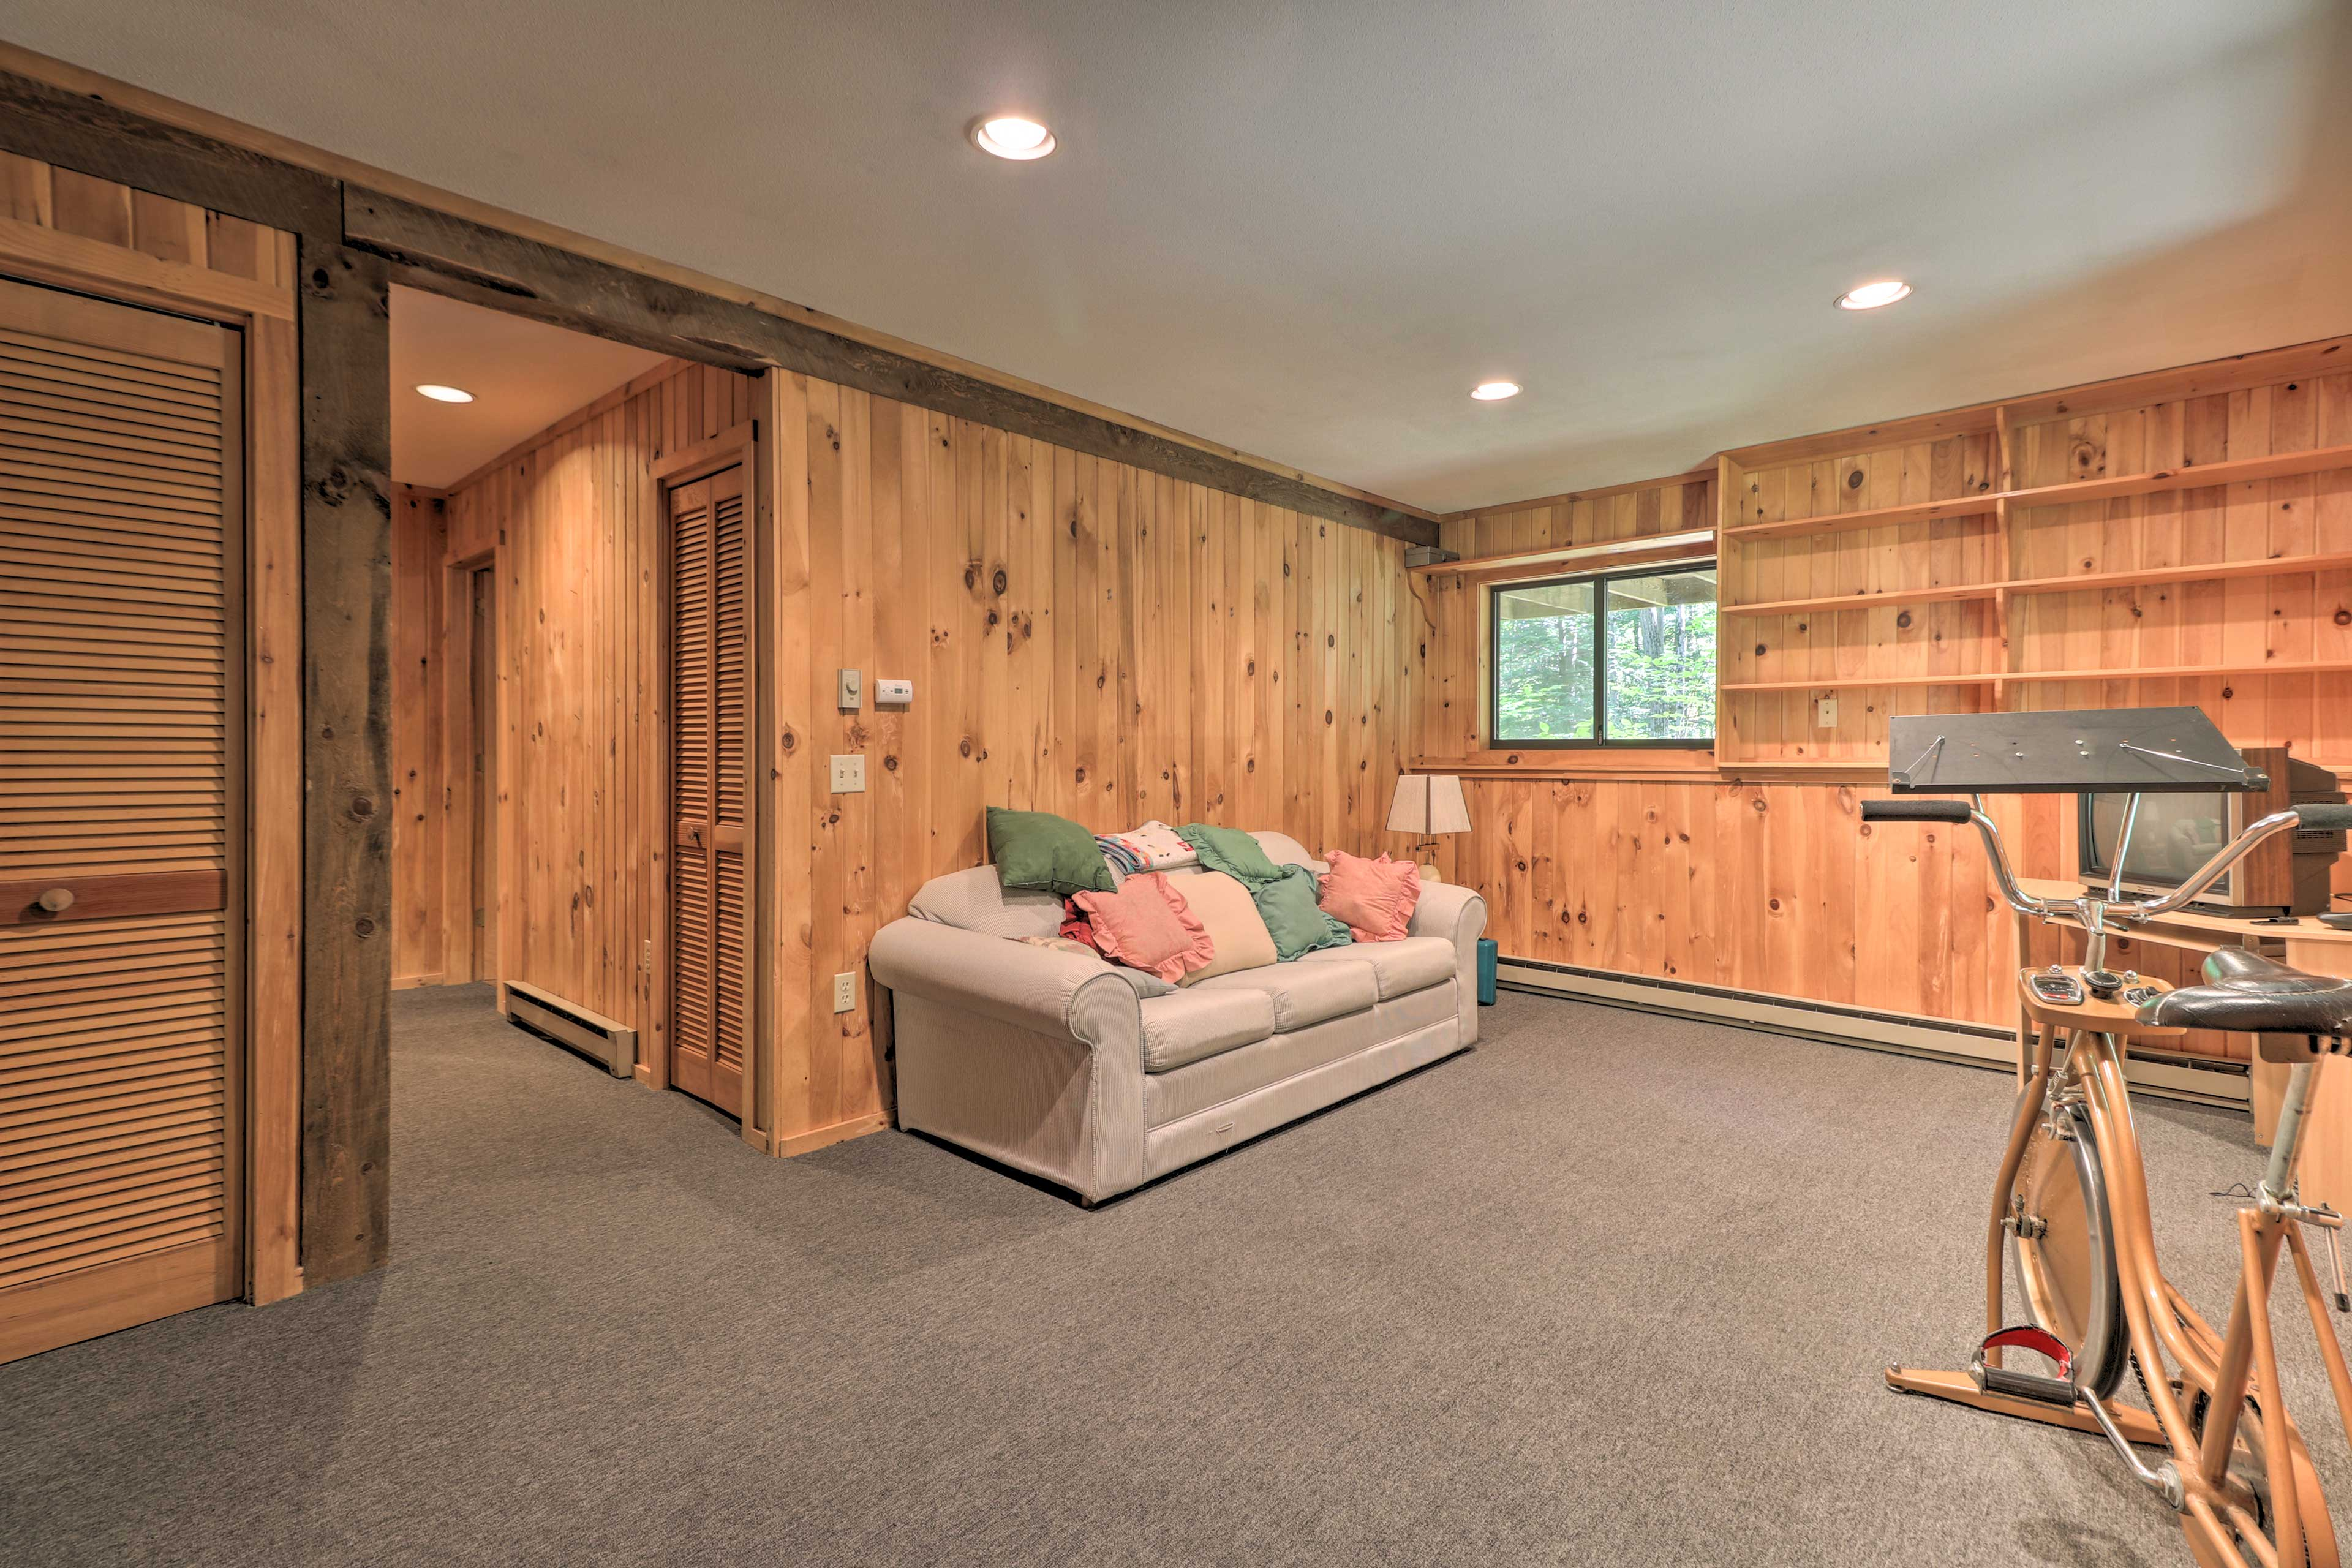 Head downstairs to find the additional living space.